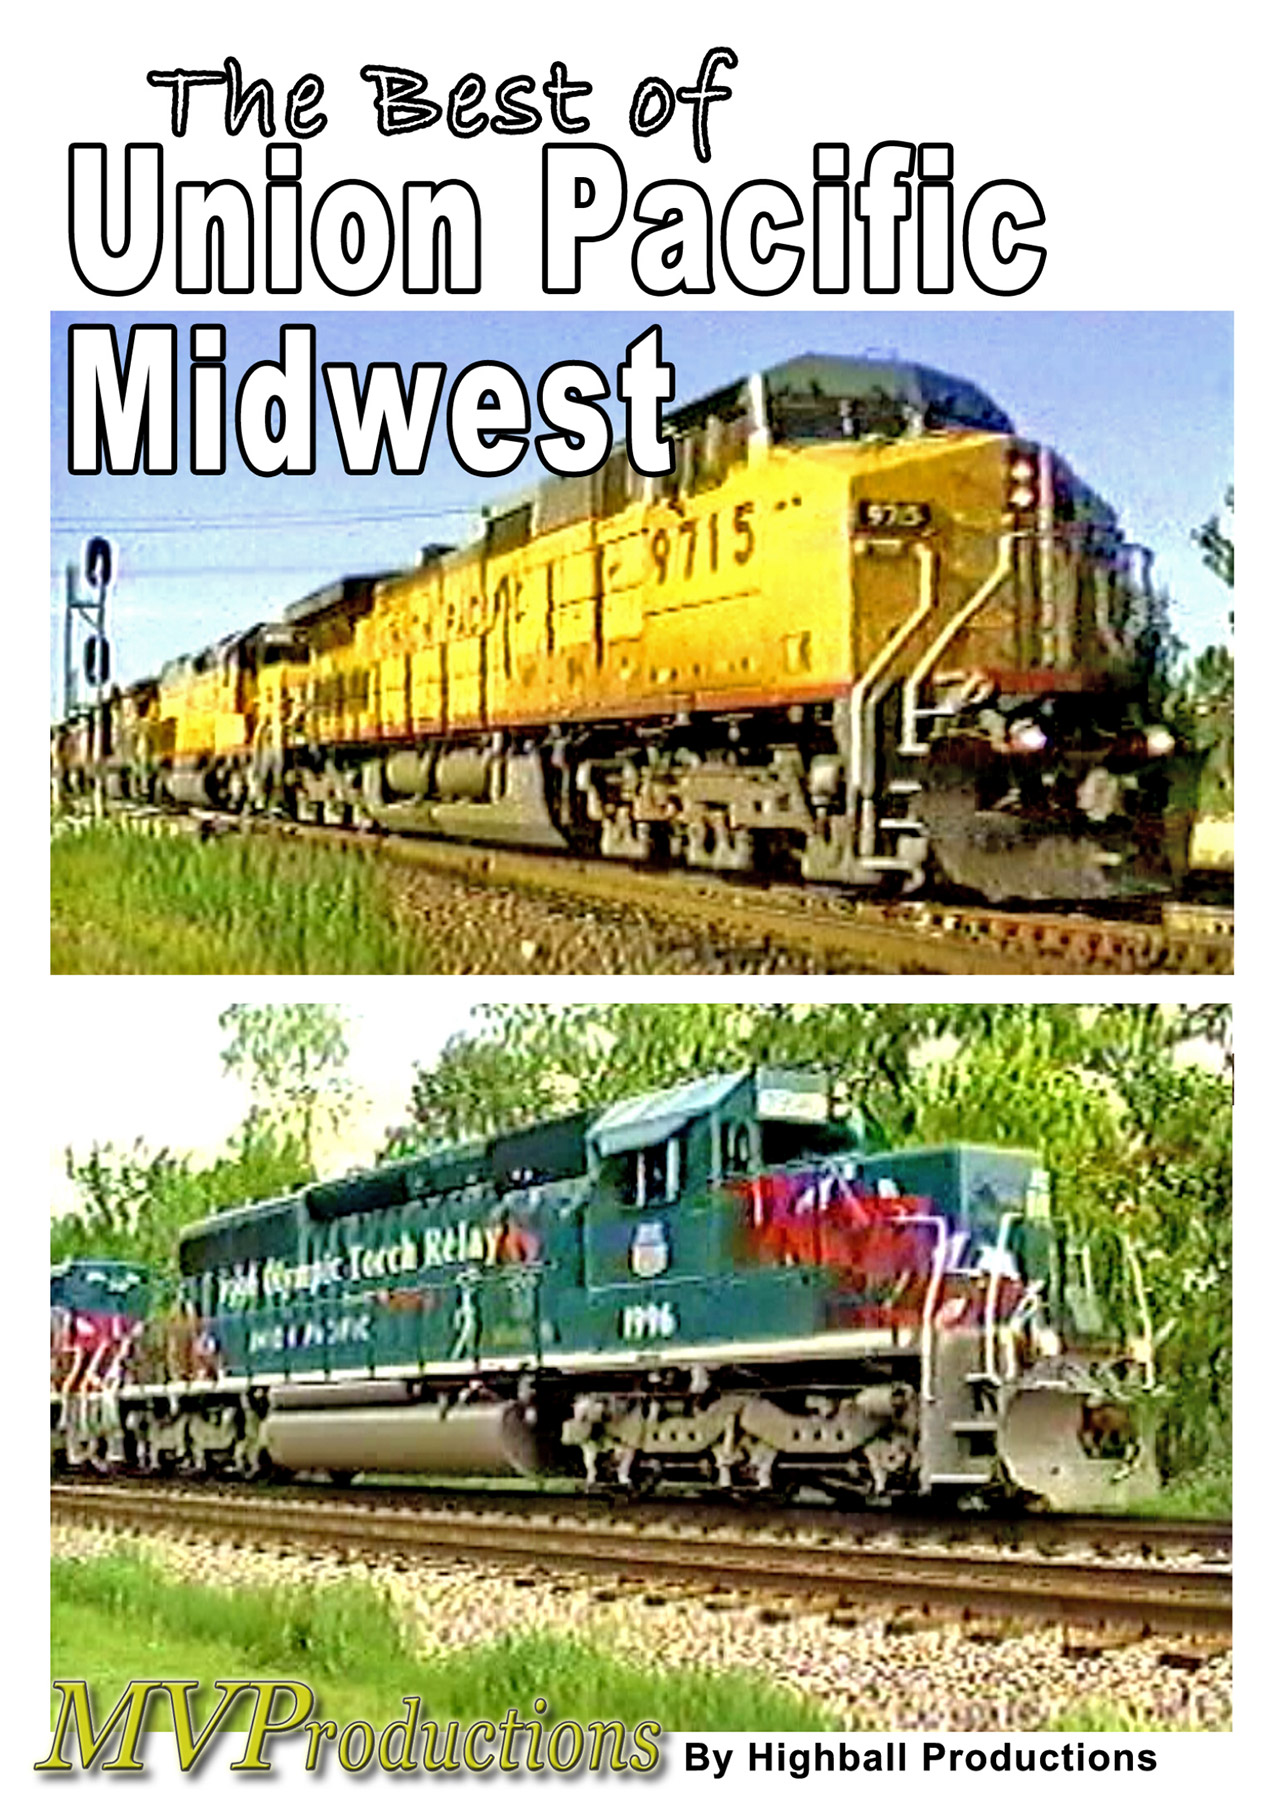 Best of Union Pacific - Midwest Train Video Midwest Video Productions MVBUP 601577880288